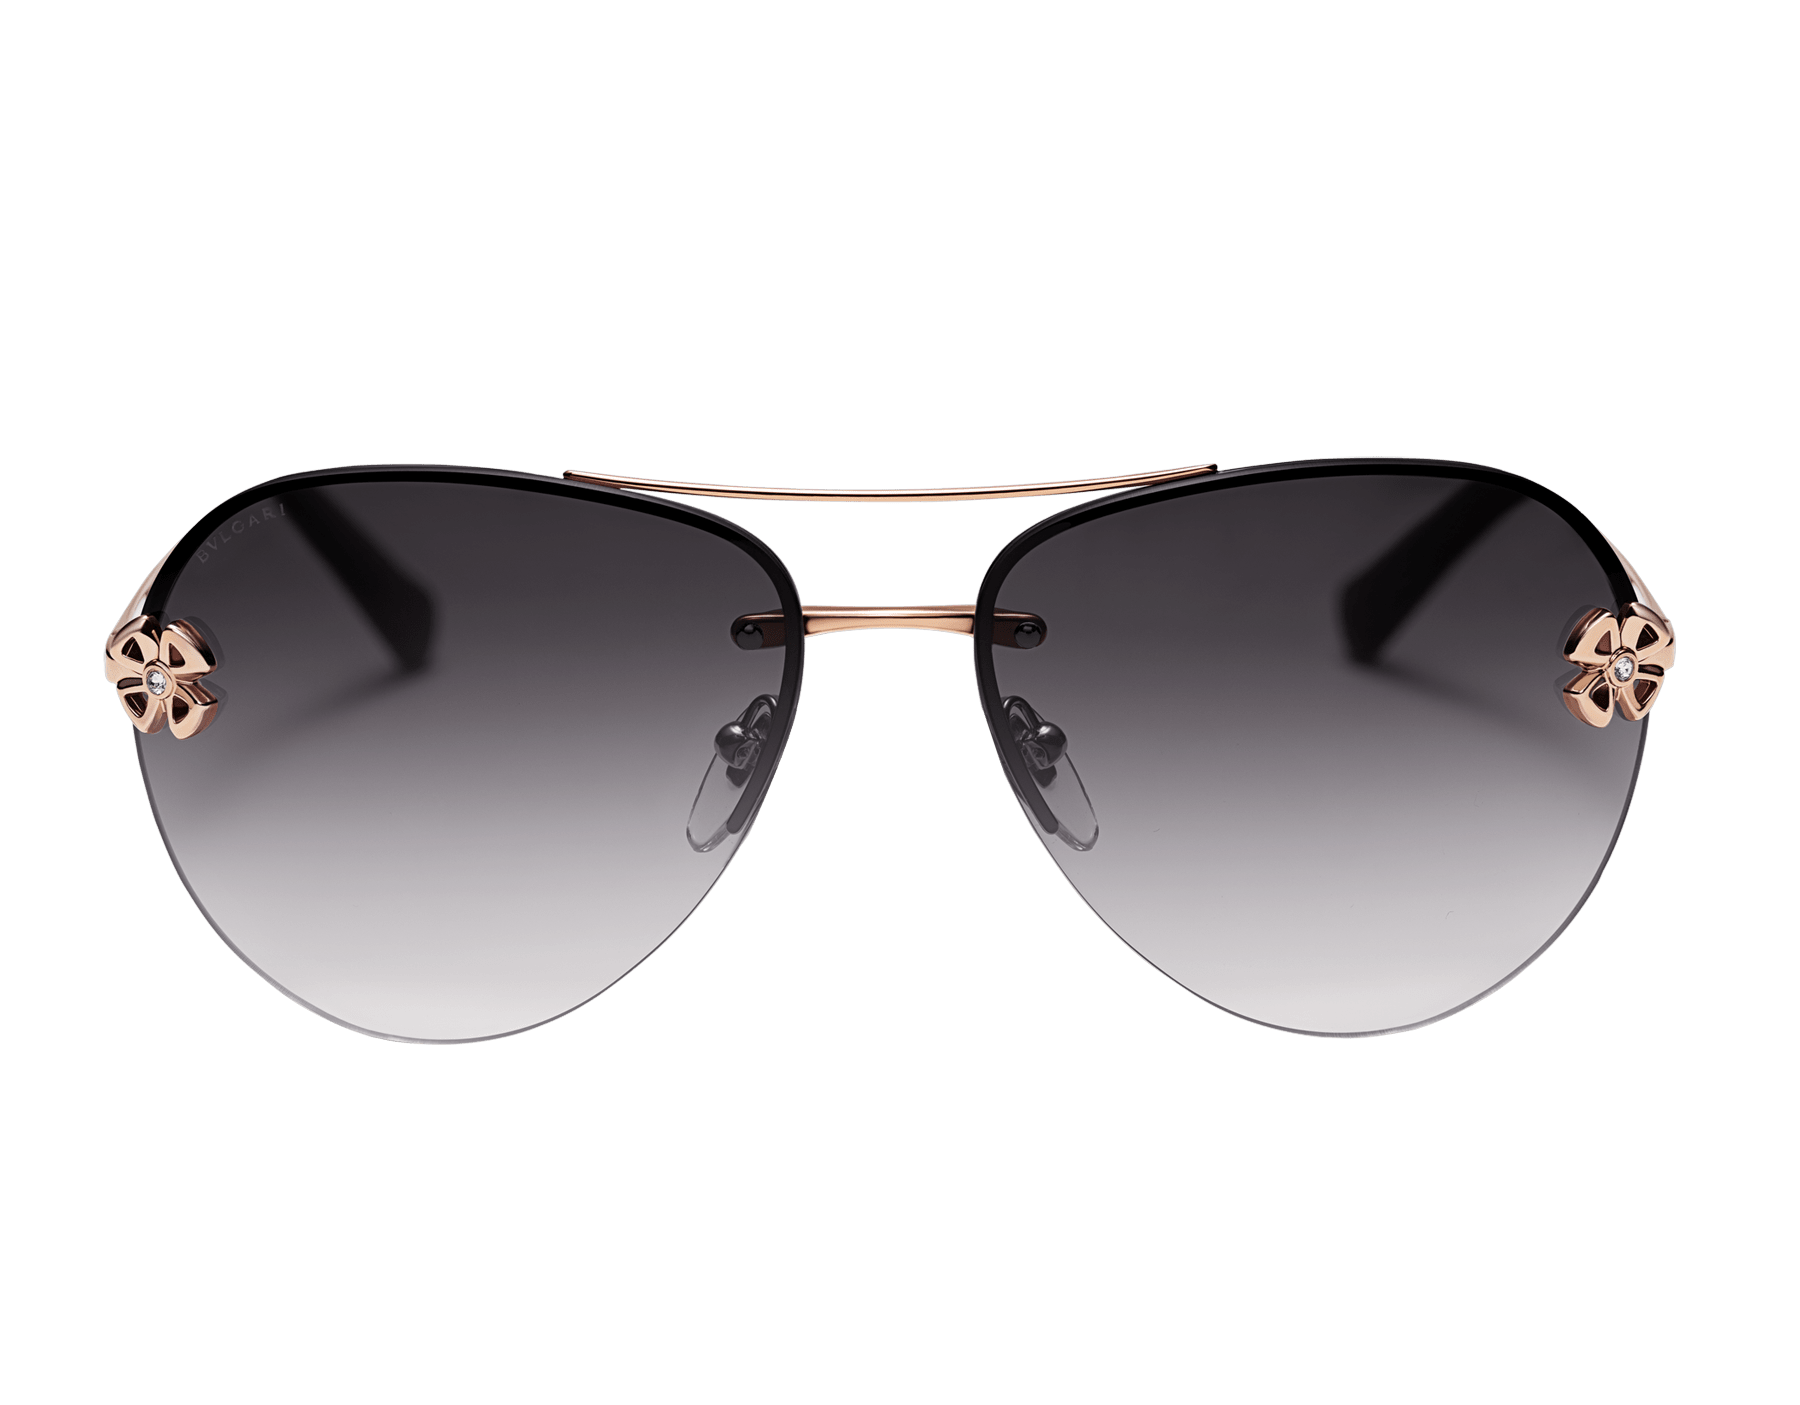 Bulgari Fiorever double bridge aviator sunglasses. 903999 image 2